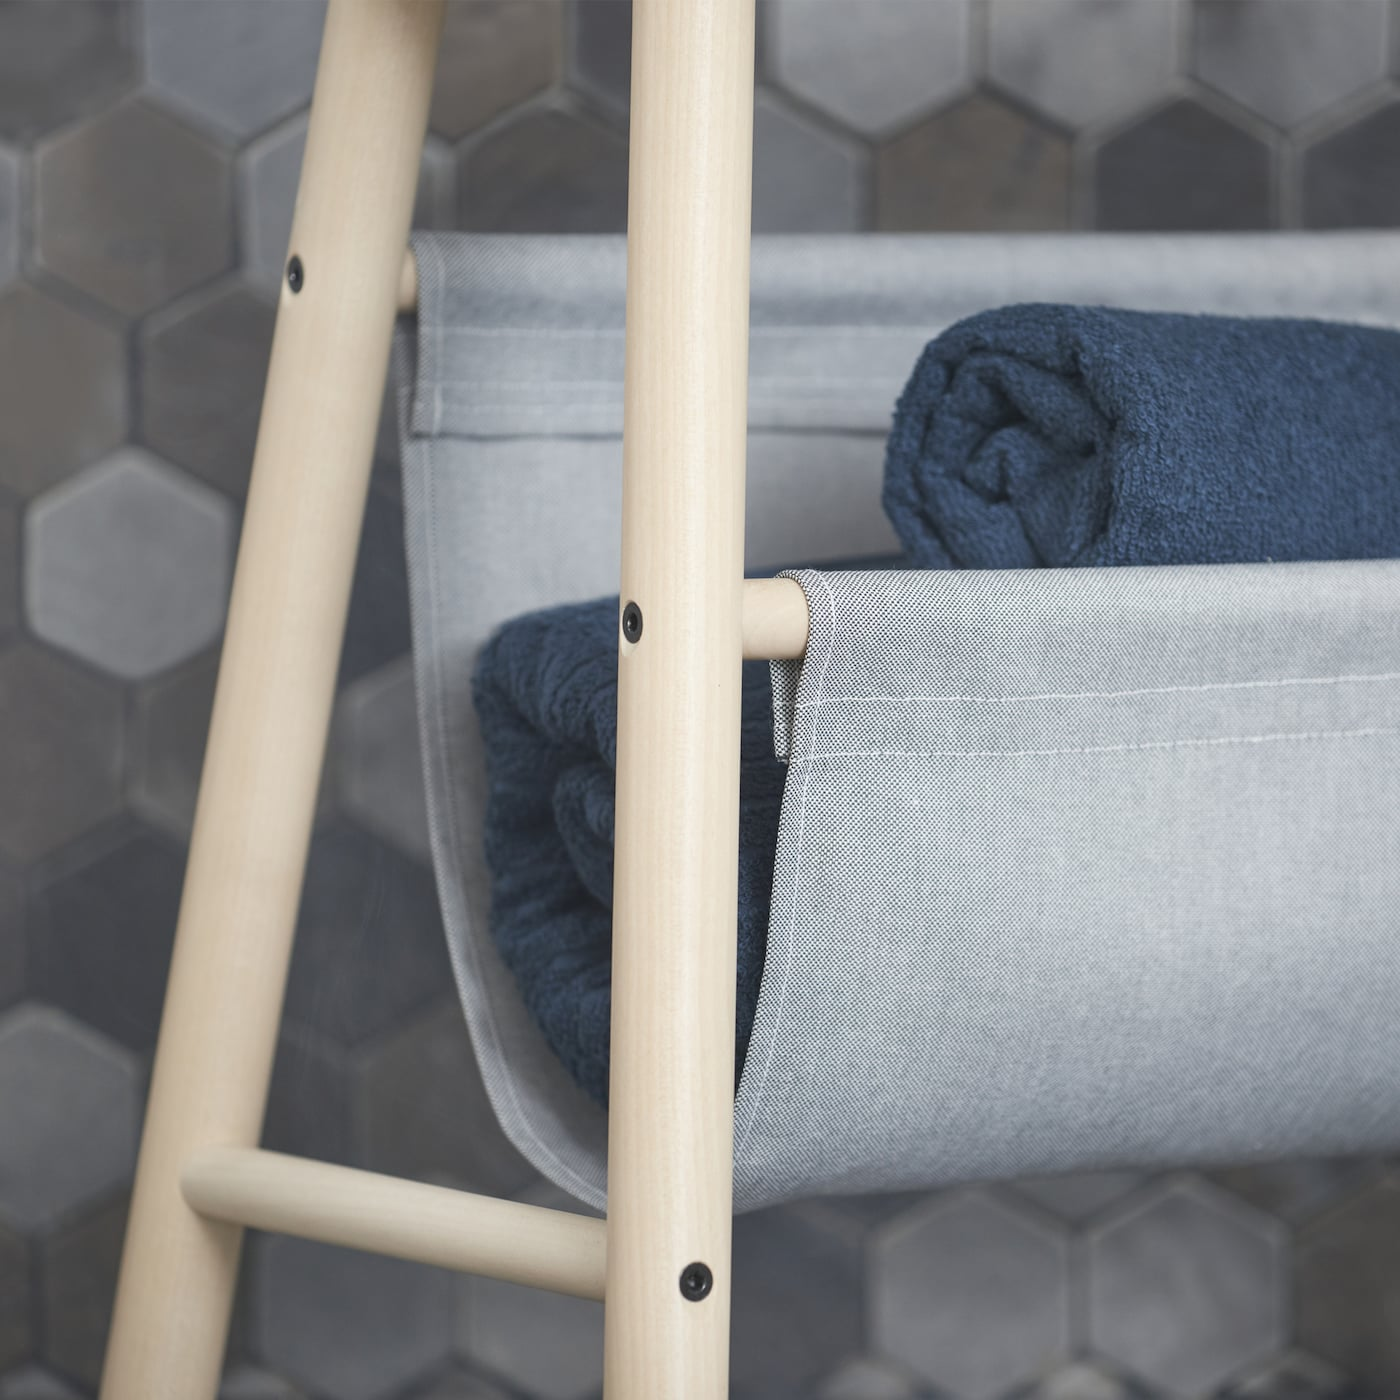 Close-up picture showing the textile pocket of IKEA VILTO storage stool that can store towels and toilet rolls. The light birch storage stool can also be used as a side table or magazine holder.